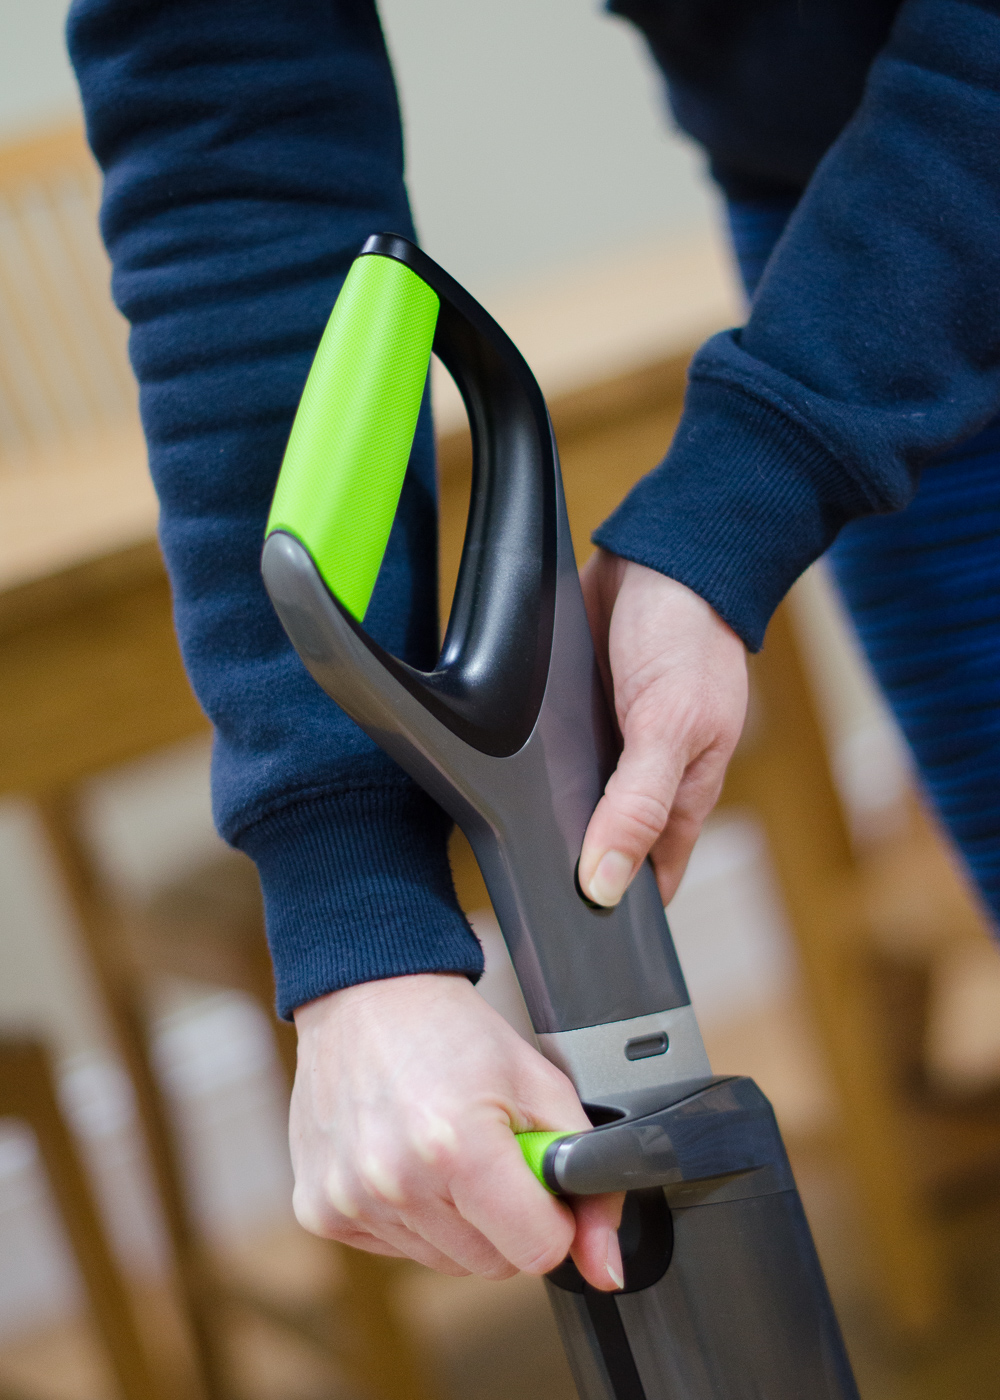 Review Gtech Airram Mk2 Cordless Vacuum Cleaner Growing